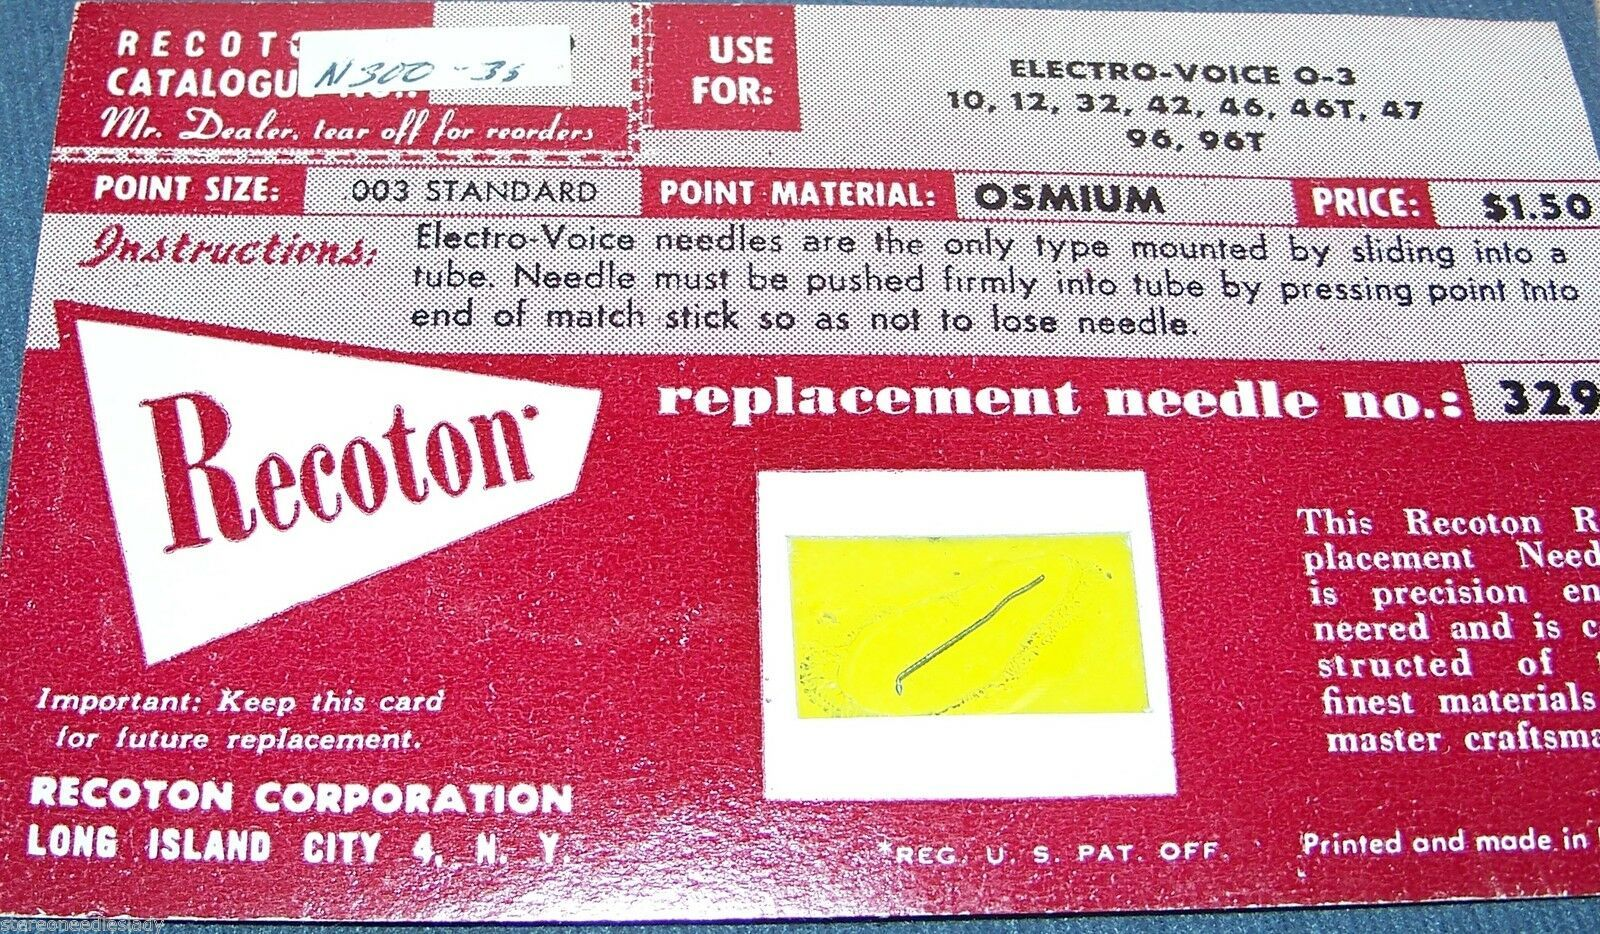 PHONOGRAPH RECORD NEEDLE for Electro-Voice EV O-3 EV 10 12 32 42 46 46T 47 96